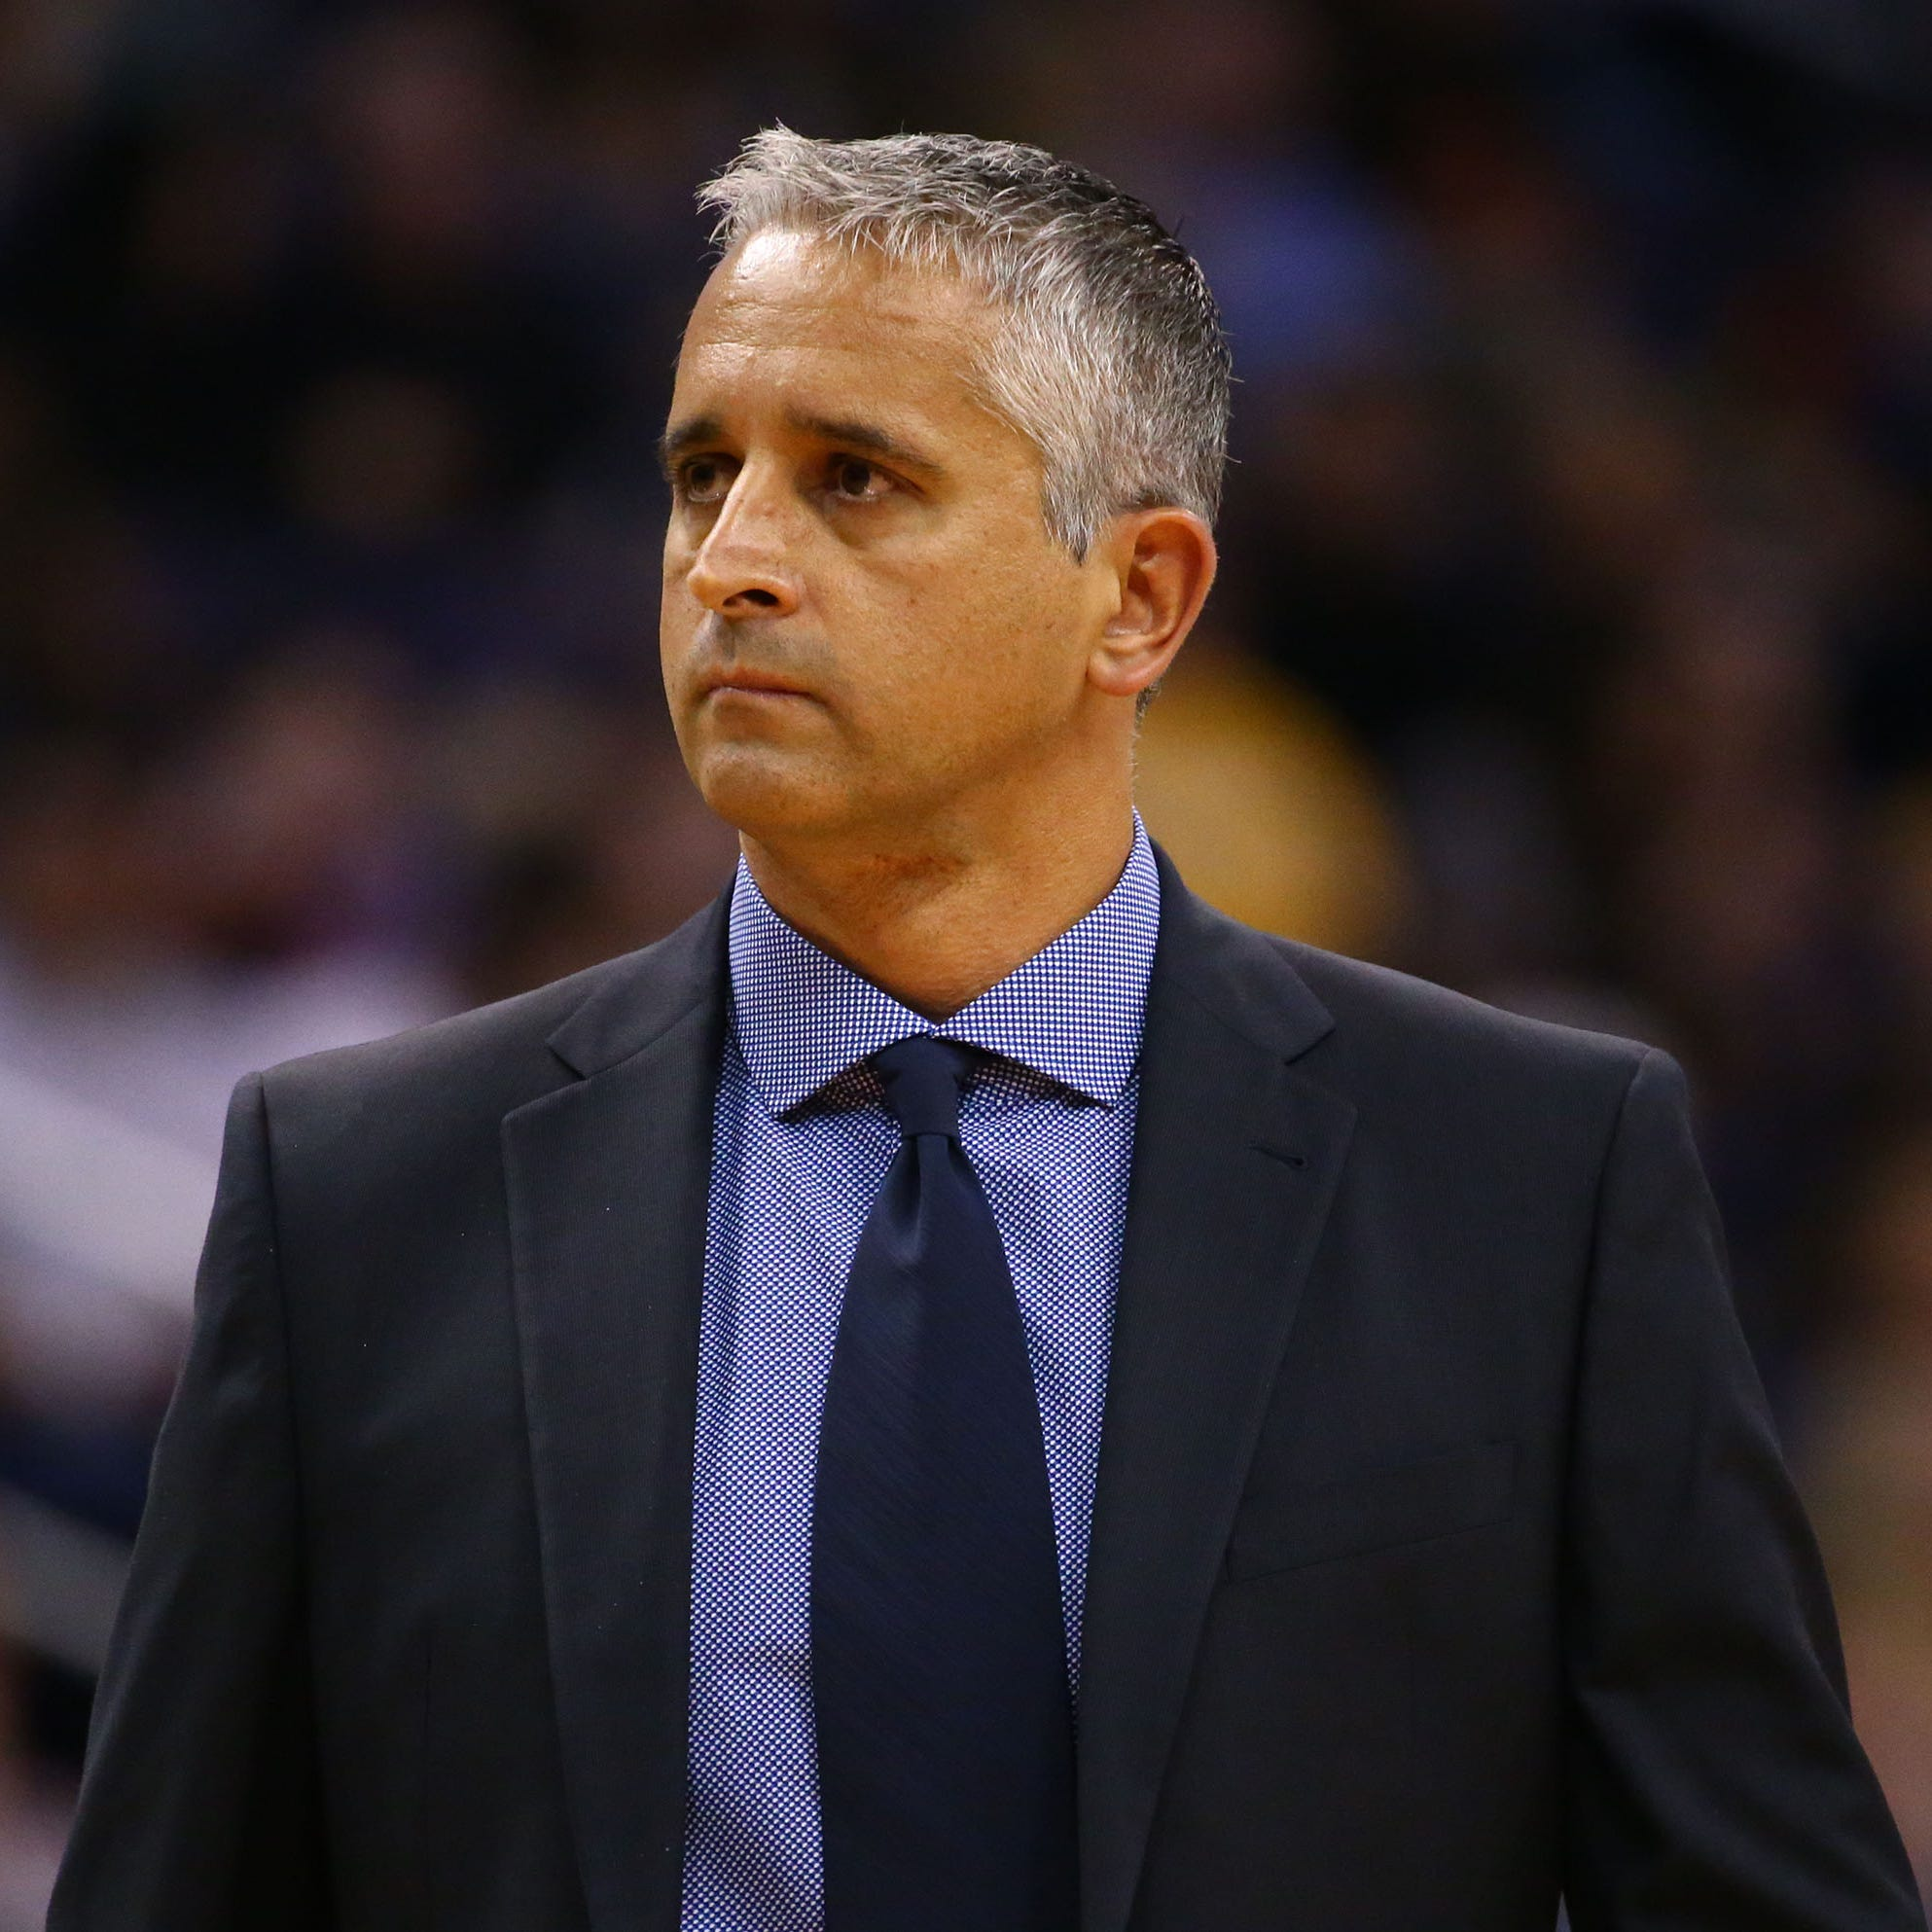 Igor Kokoskov was doomed with Phoenix Suns by a lack of connection with younger players